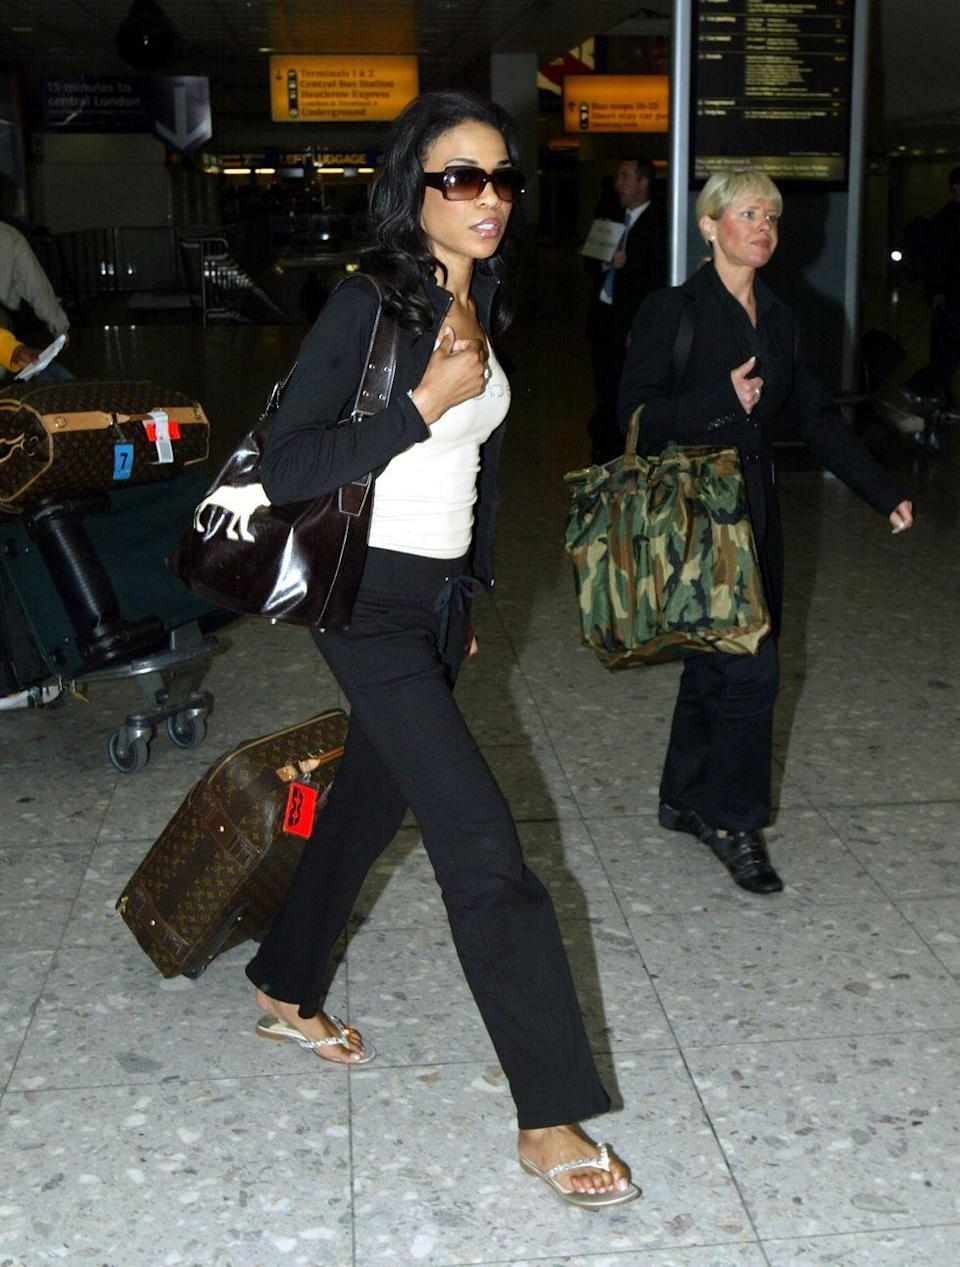 <p>Destiny's Child singer Michelle Williams arrives at London's Heathrow Airport, luggage in tow, in May 2004. </p>